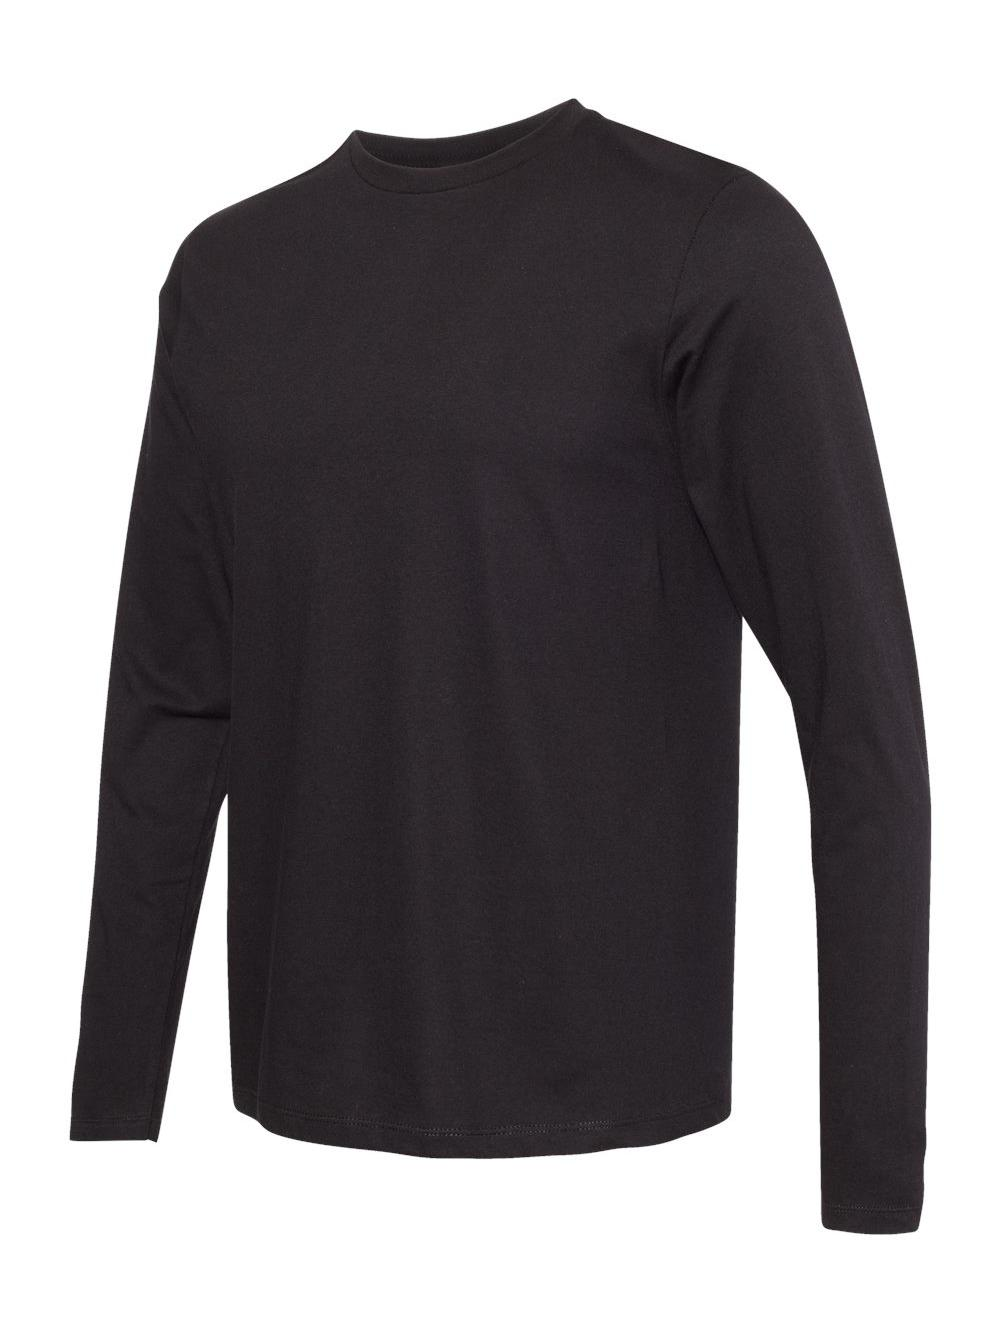 ALSTYLE-Ultimate-Long-Sleeve-T-Shirt-5304 thumbnail 3